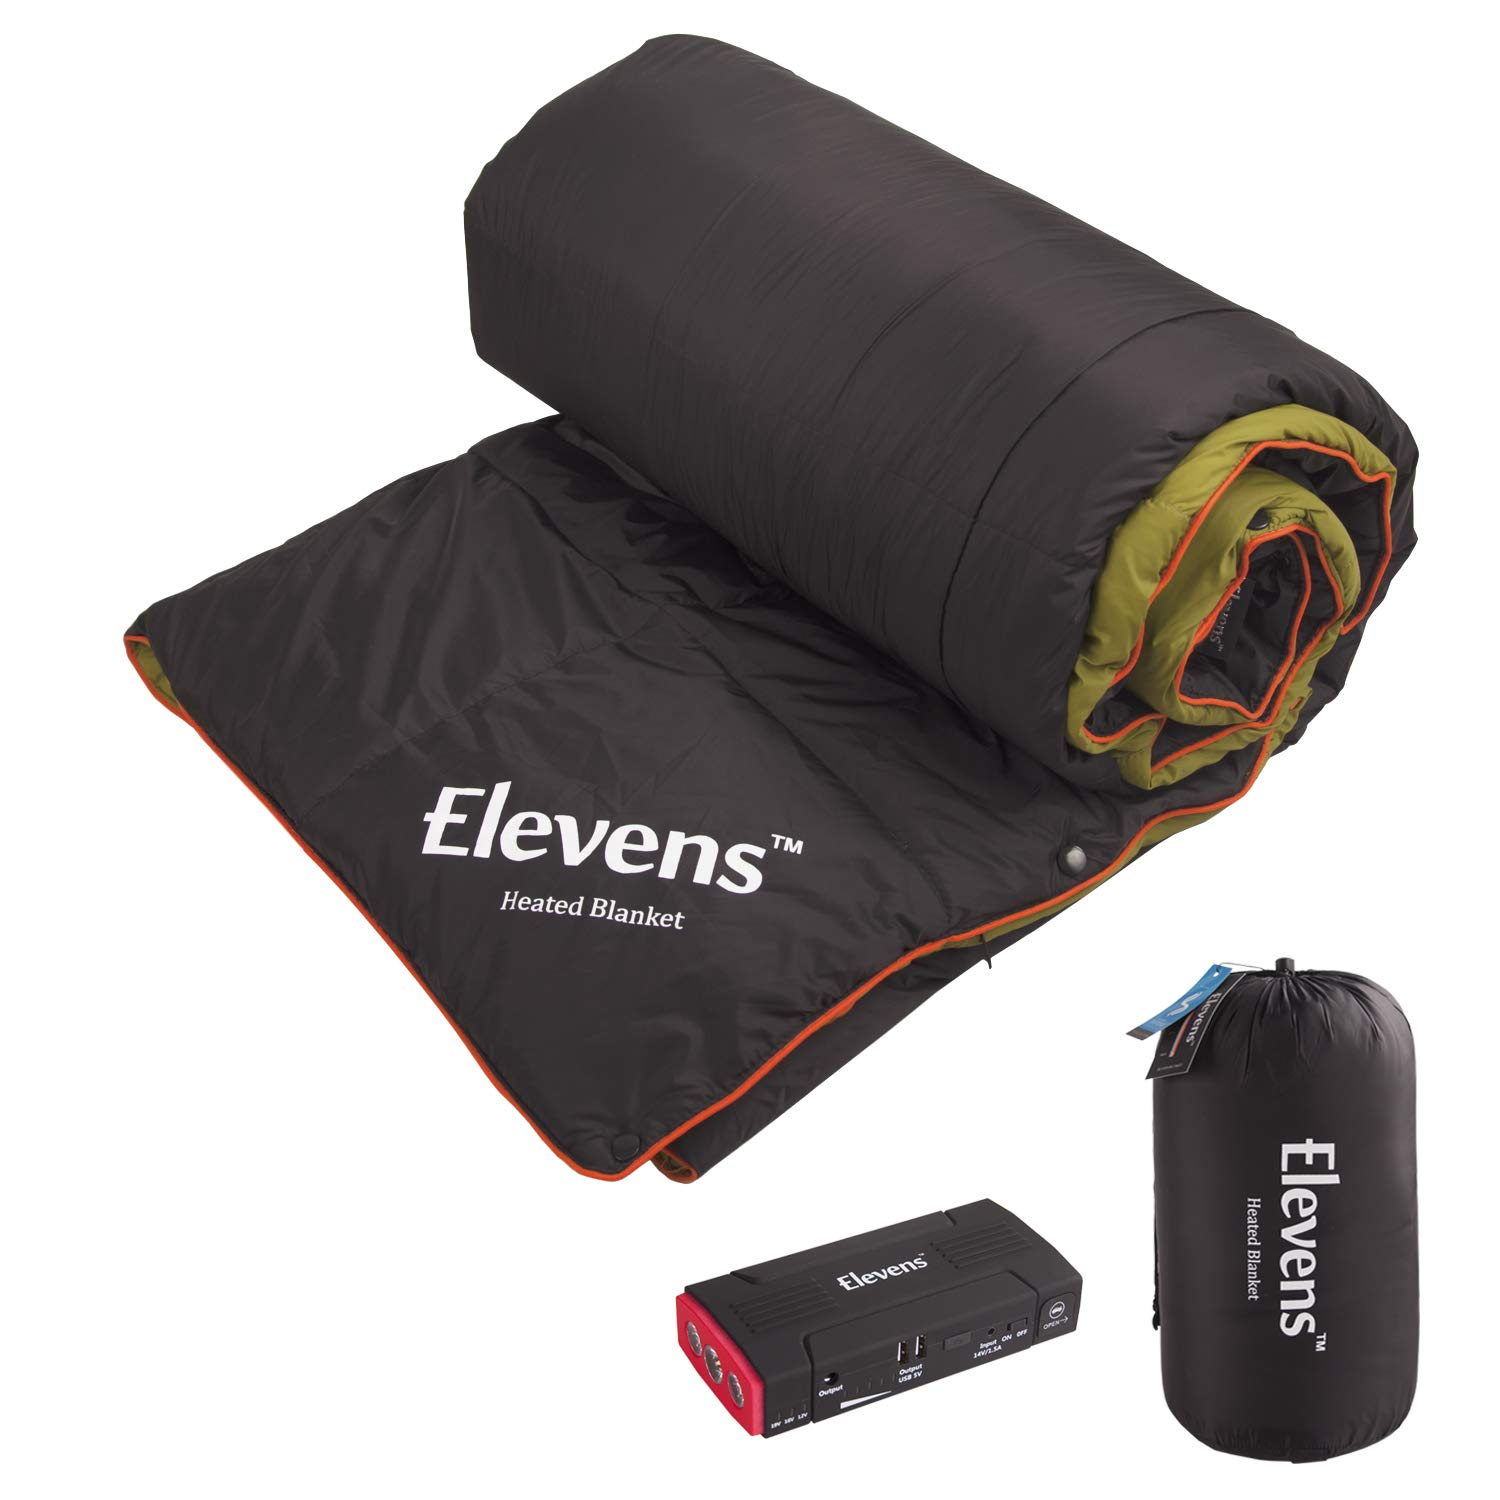 Battery Operated Heated Blanket Alternative to 4 Seasons Portable Sleeping Bag for Camping Hiking Travel by Elevens